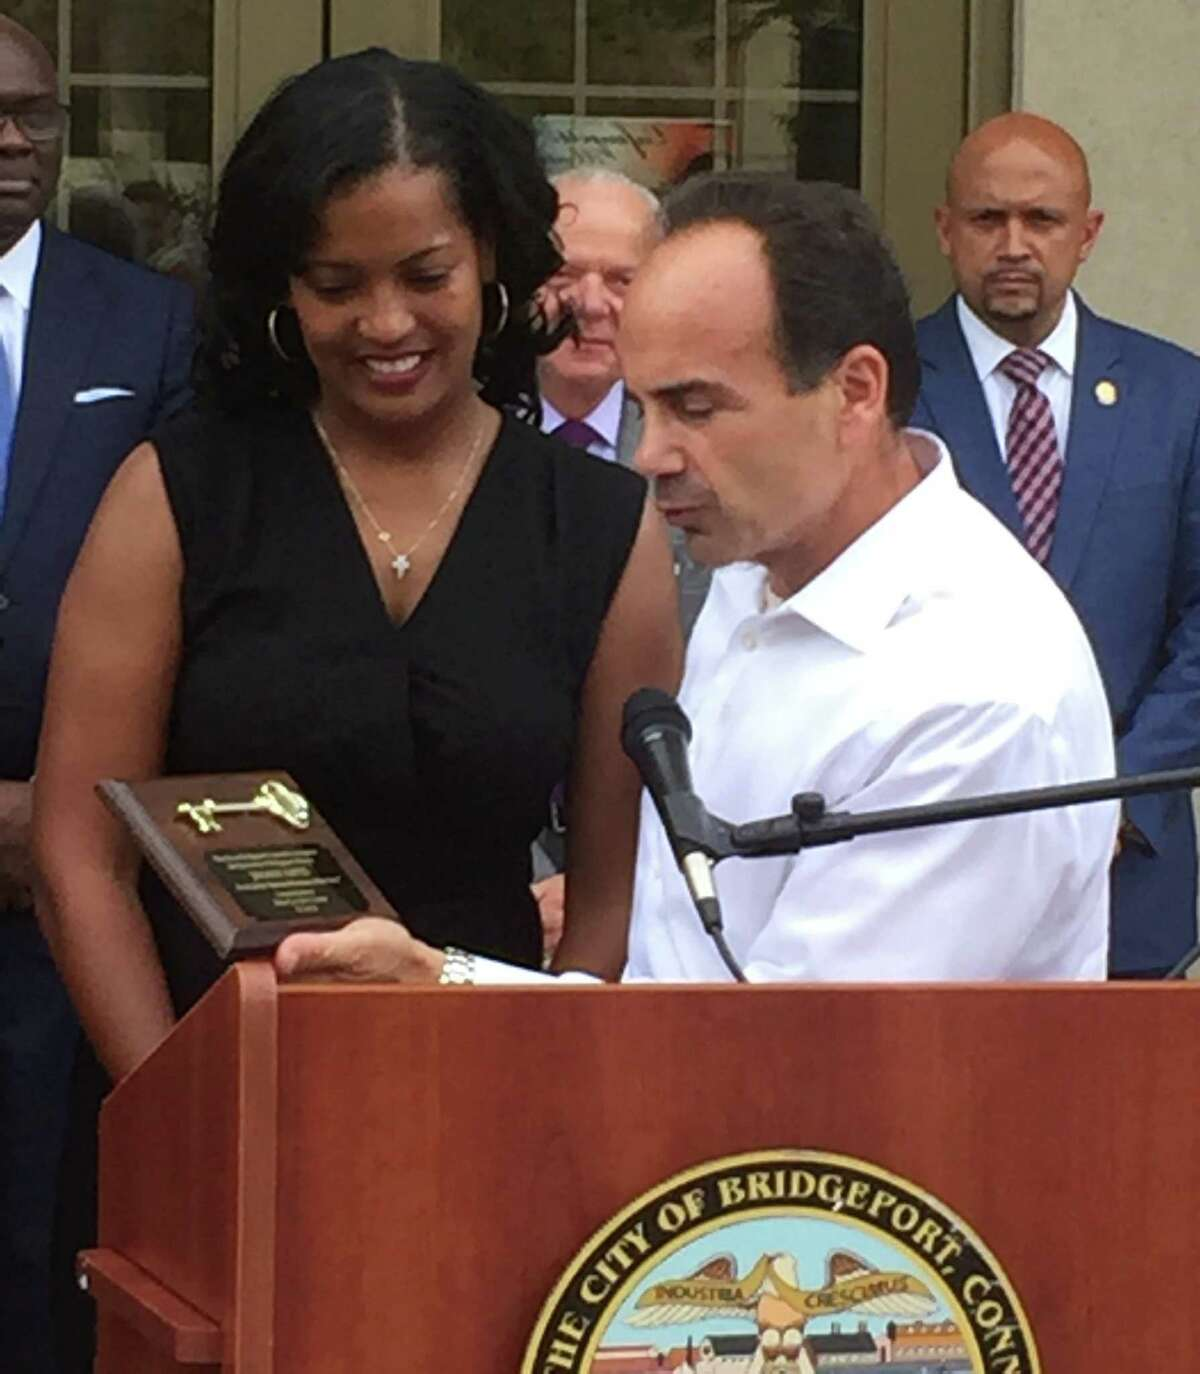 Bridgeport Mayor Joseph P. Ganim presents 2016 National Teacher of the Year, Jahana Hayes with a key to the city during a ceremony at City Hall on Wednesday, Sept. 14, 2016.